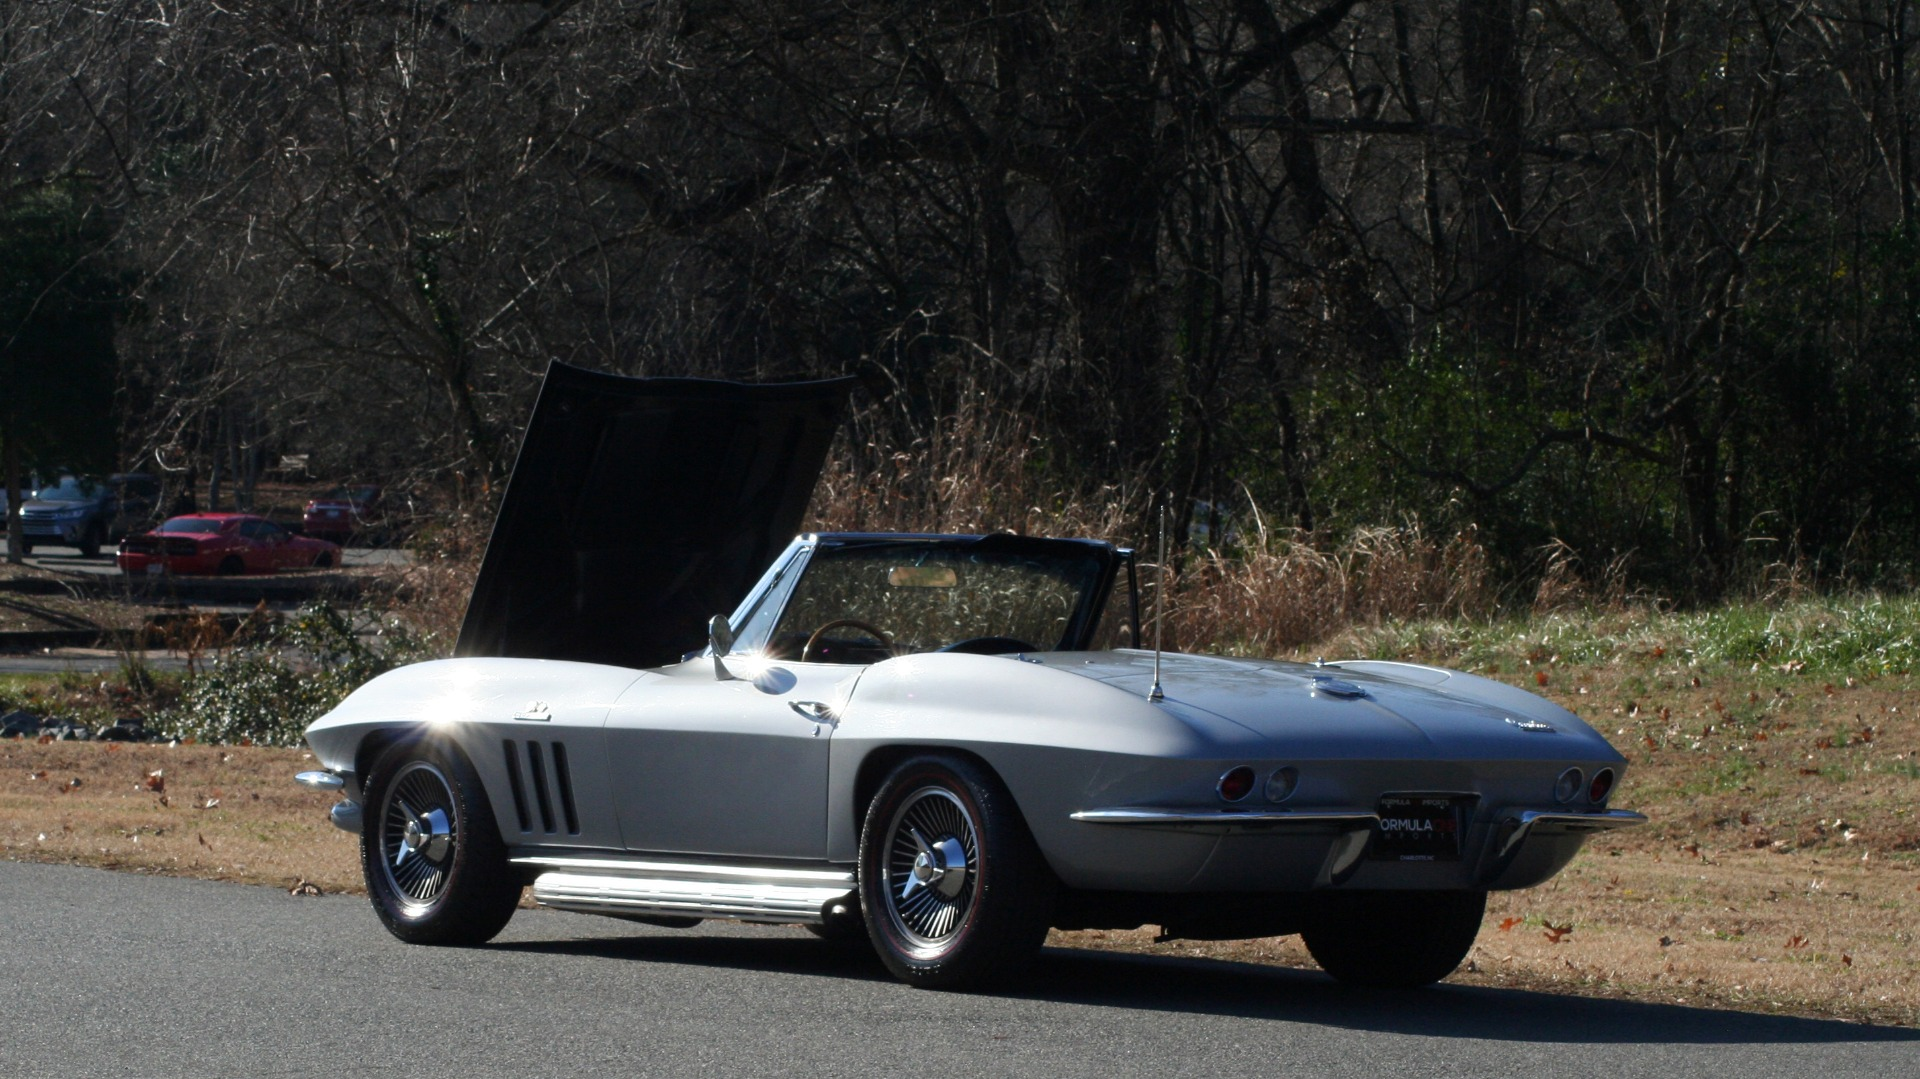 Used 1966 Chevrolet CORVETTE STINGRAY CONVERTIBLE 427 / 4-SPD / NUMBER MATCHING for sale Sold at Formula Imports in Charlotte NC 28227 5